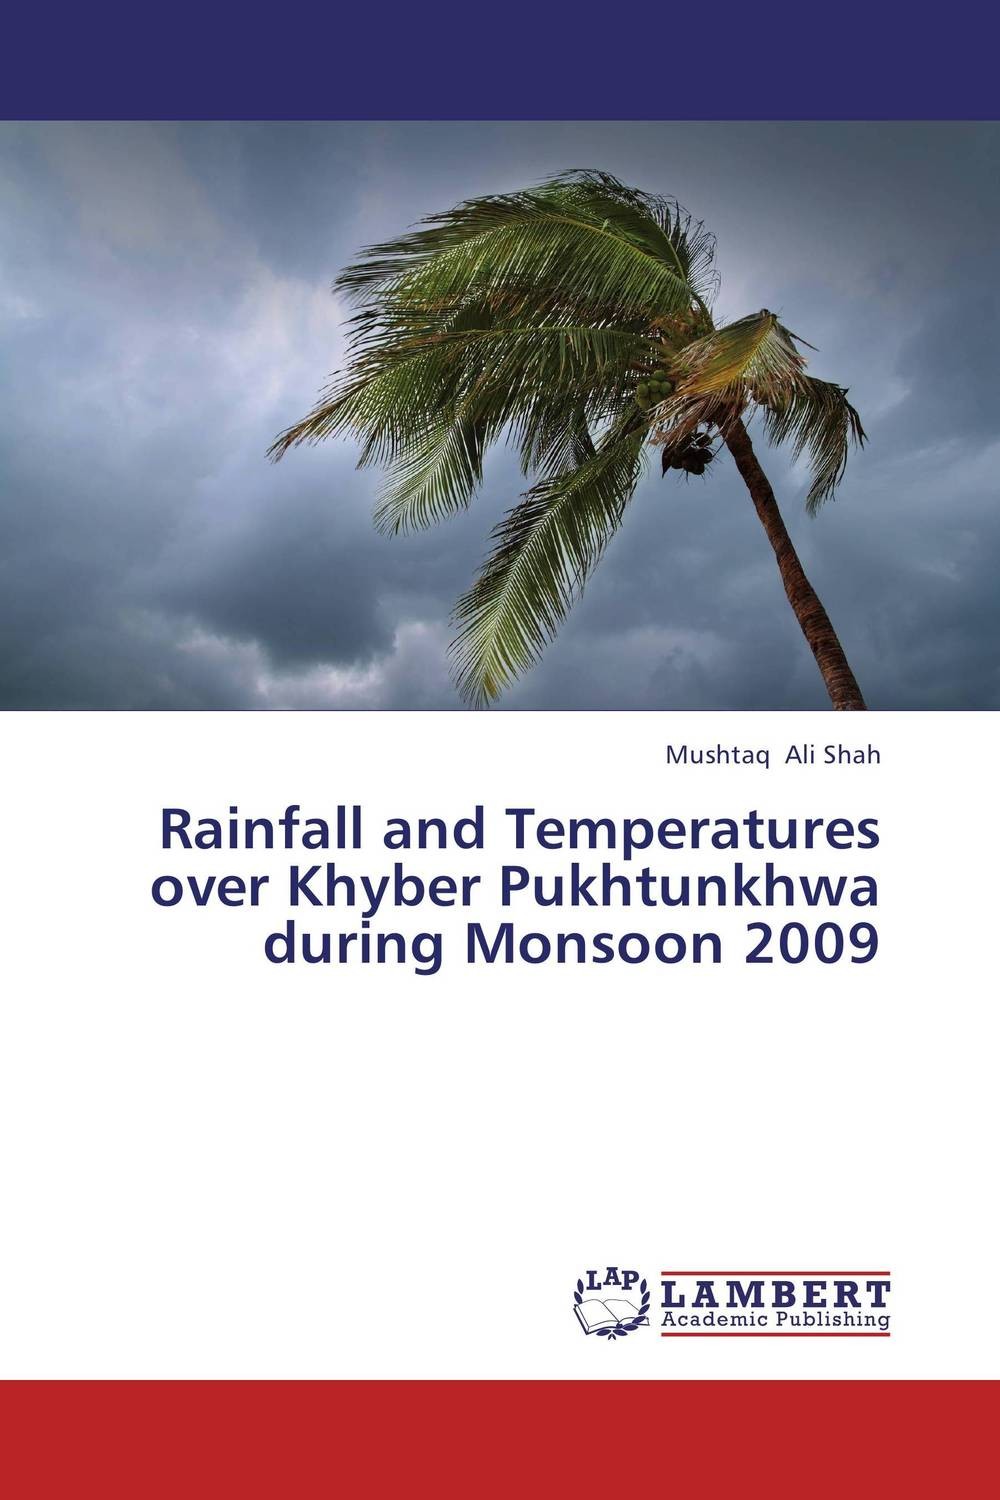 Rainfall and Temperatures over Khyber Pukhtunkhwa during Monsoon 2009 safety valves in angle way execution specially designed for protection of vessels and other components against excess pressure